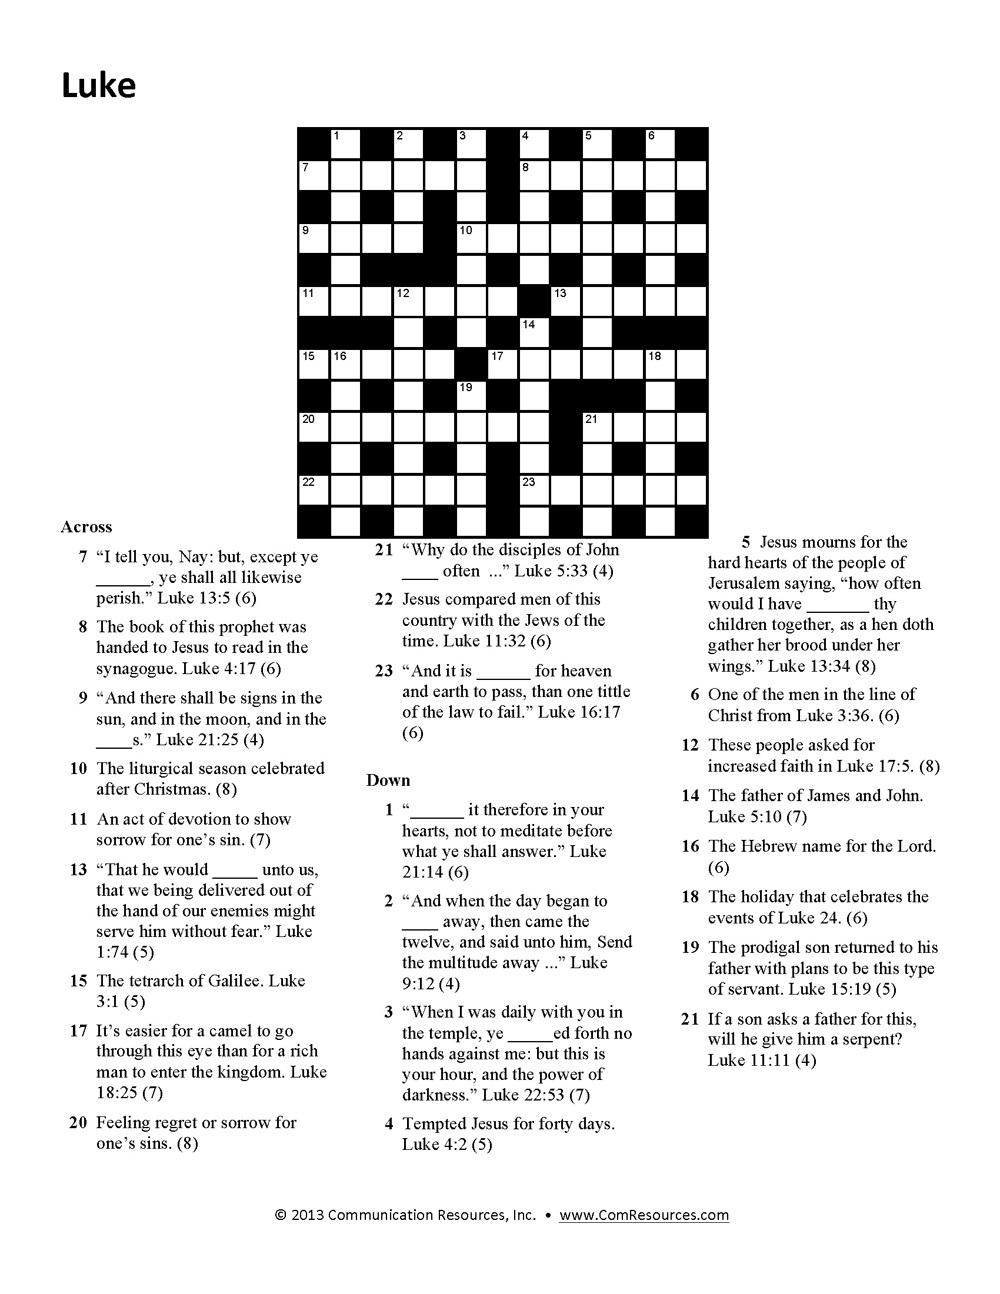 15 Fun Bible Crossword Puzzles | Kittybabylove - Bible Crossword Puzzles Printable With Answers